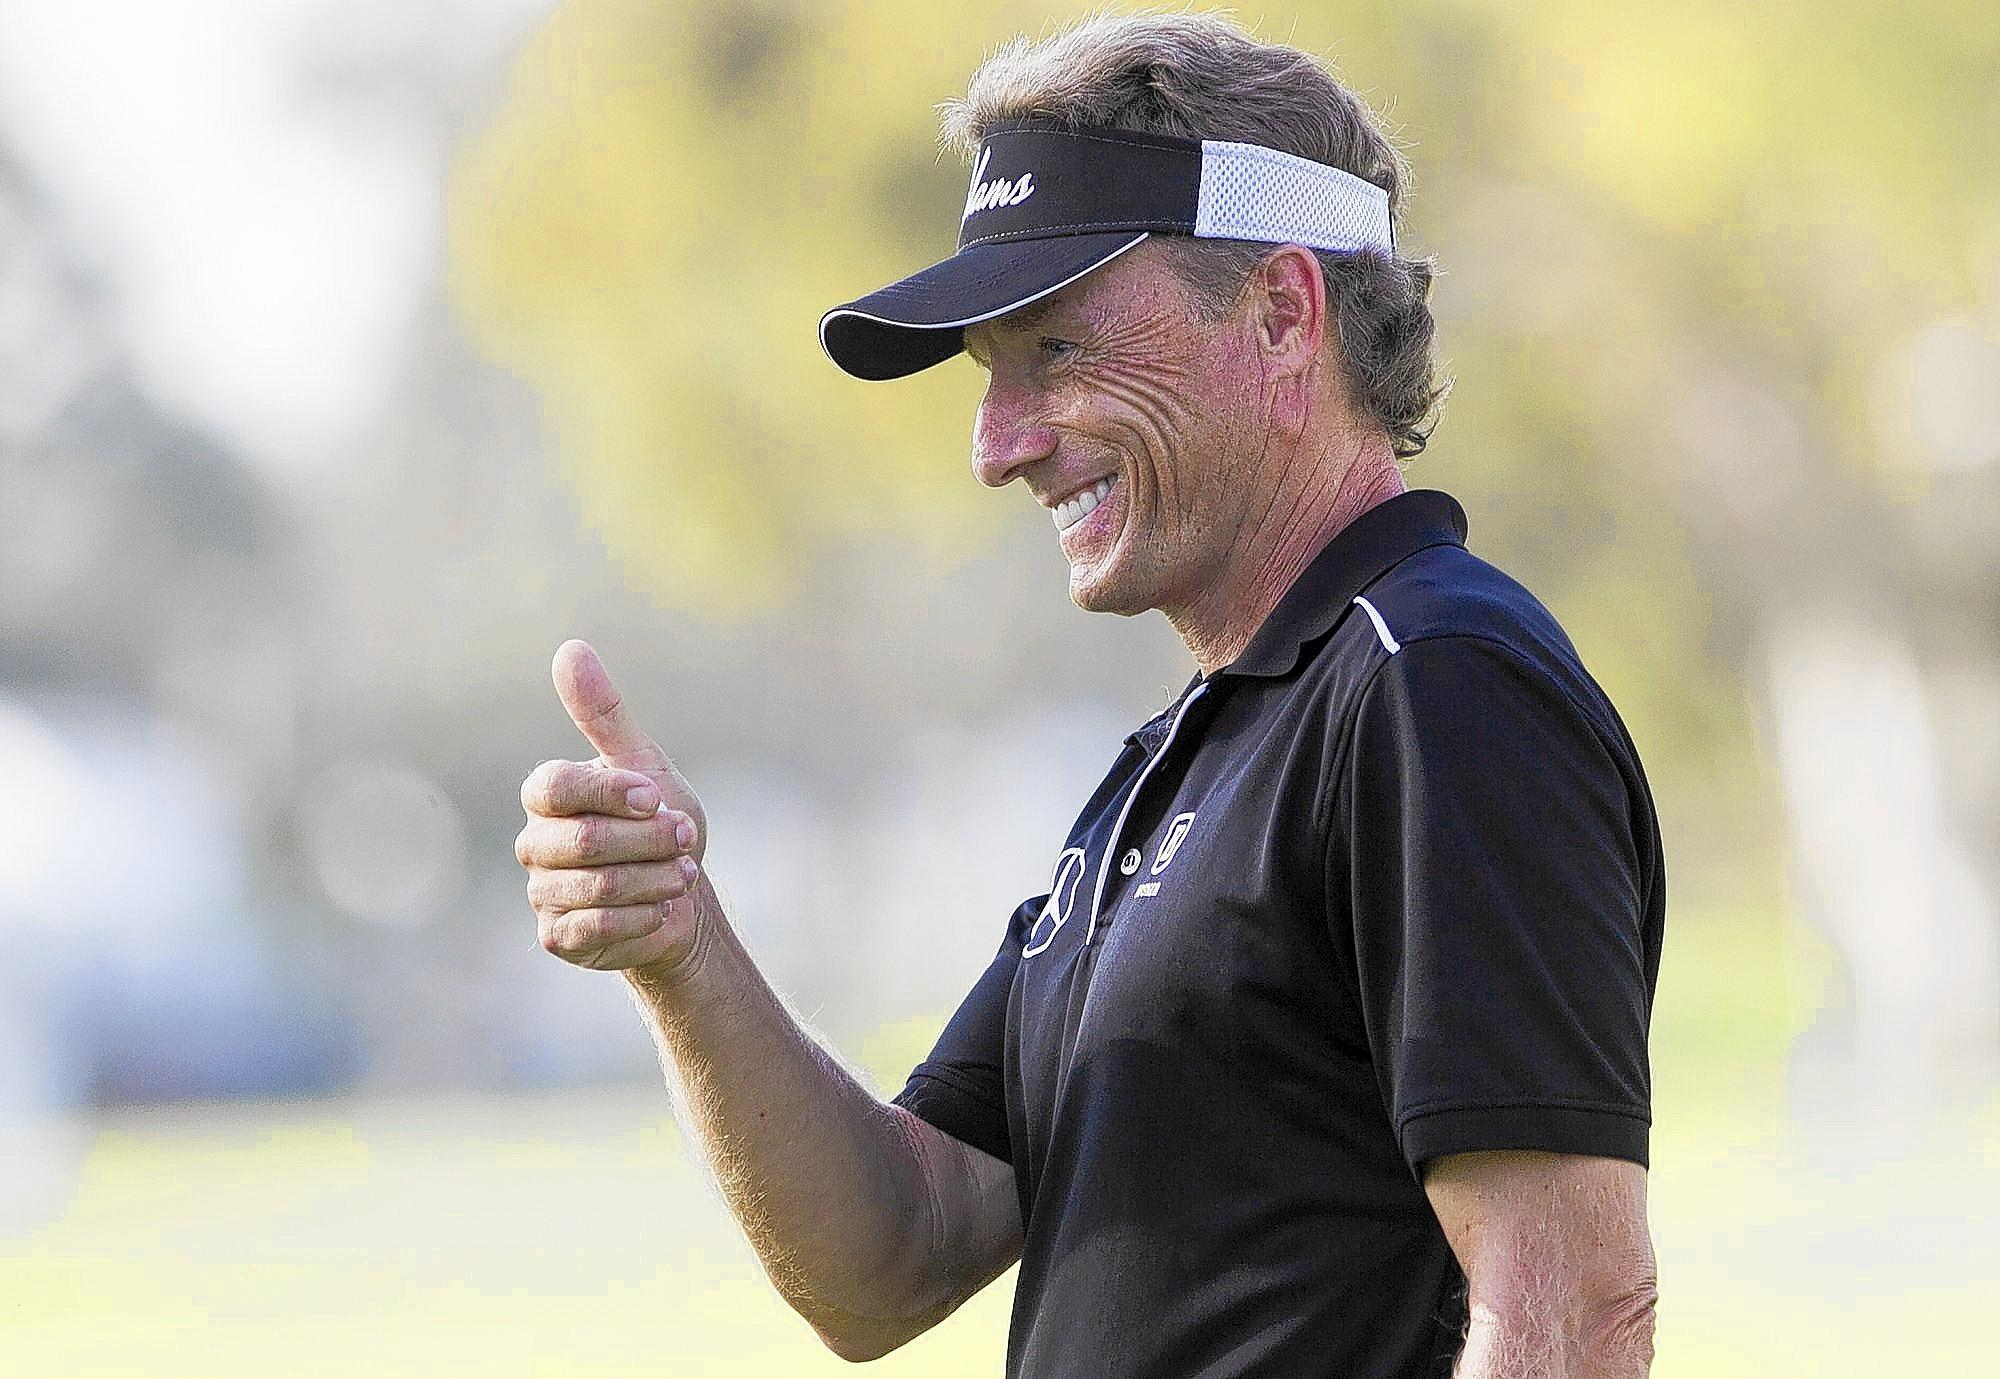 Bernhard Langer gives a thumbs up to the crowd after a birdie on the 15th hole during the second round of the Toshiba Classic on Saturday at the Newport Beach Country Club. Langer enters the final day of the tournament atop the leaderboard with a 13-under-par.